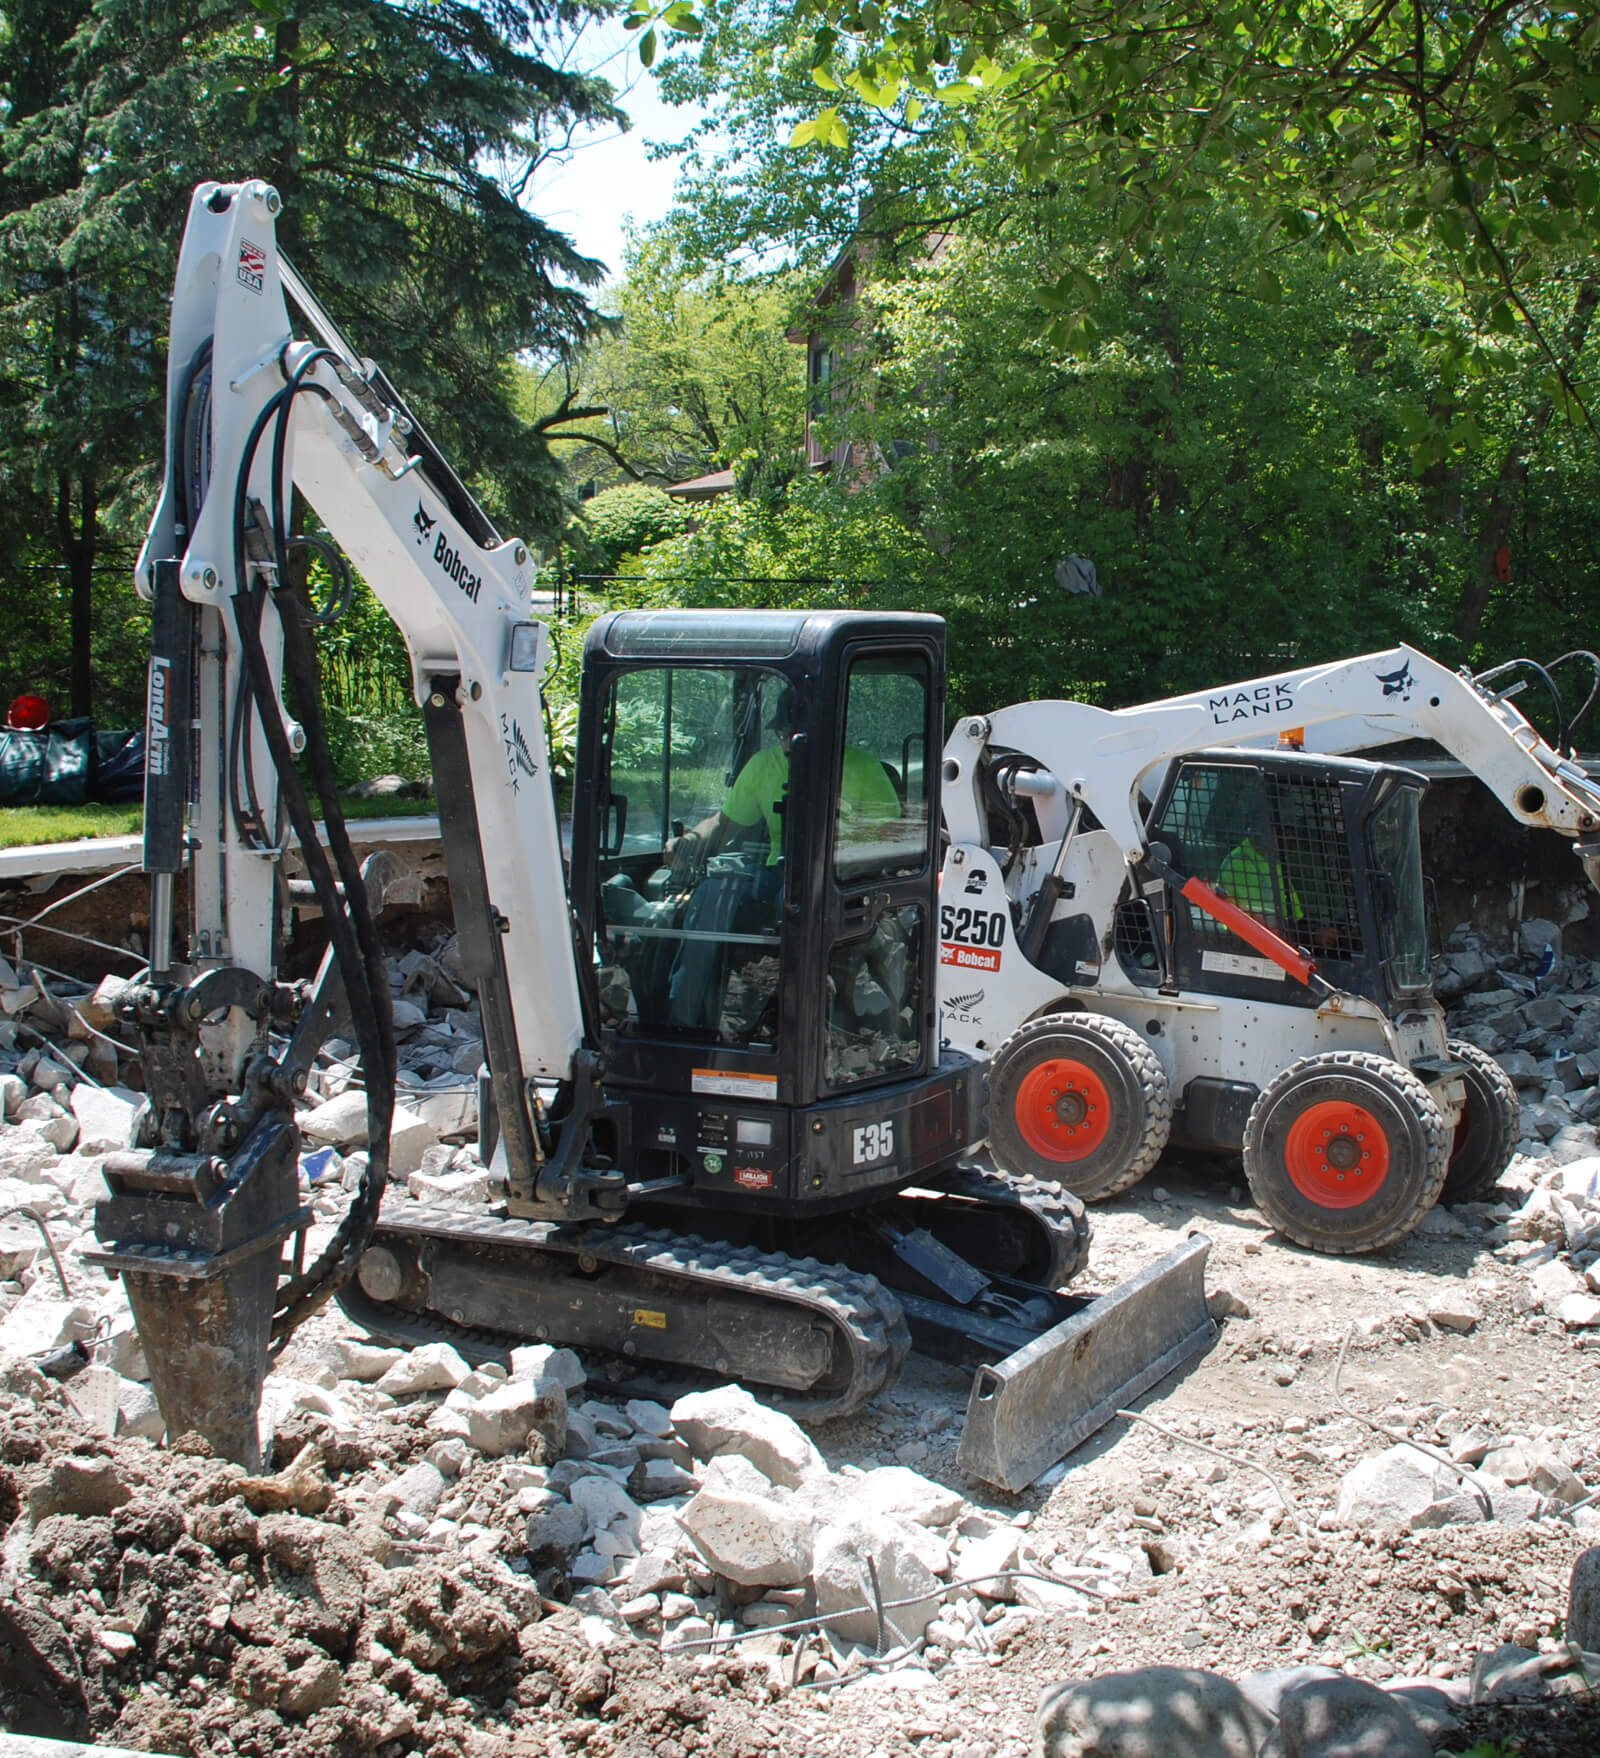 Mack Land Compact Excavator Landscape Architects Wauconda Denver Pool Removals